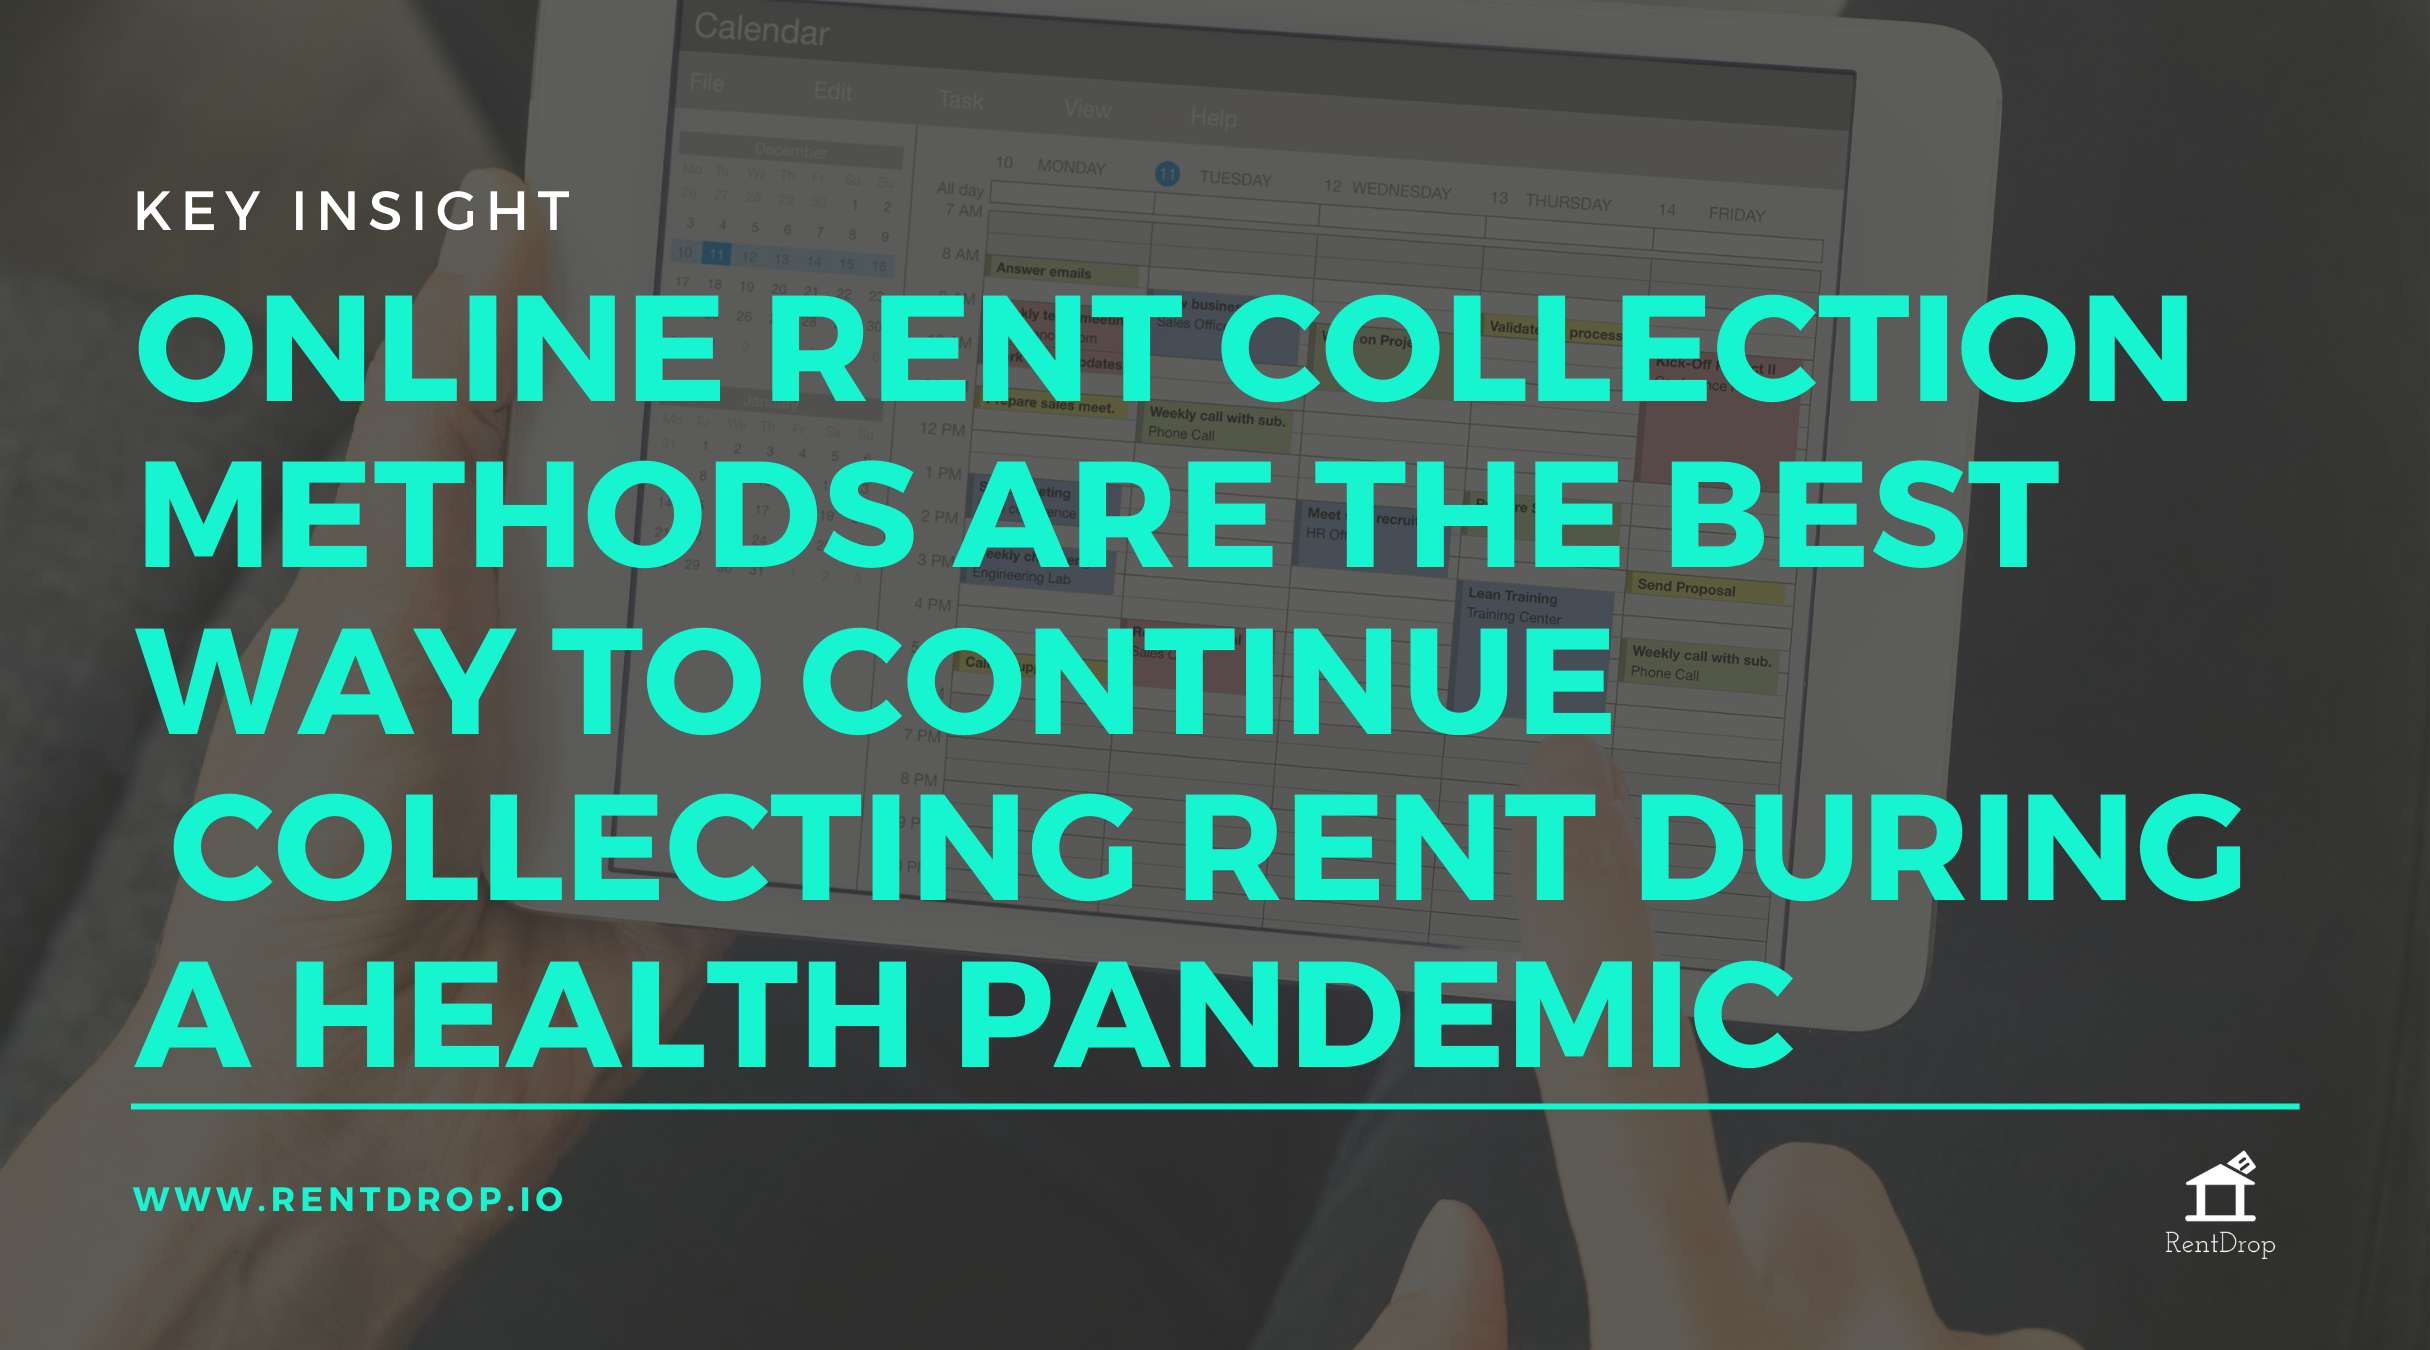 rentdrop pandemic covid-19 quote